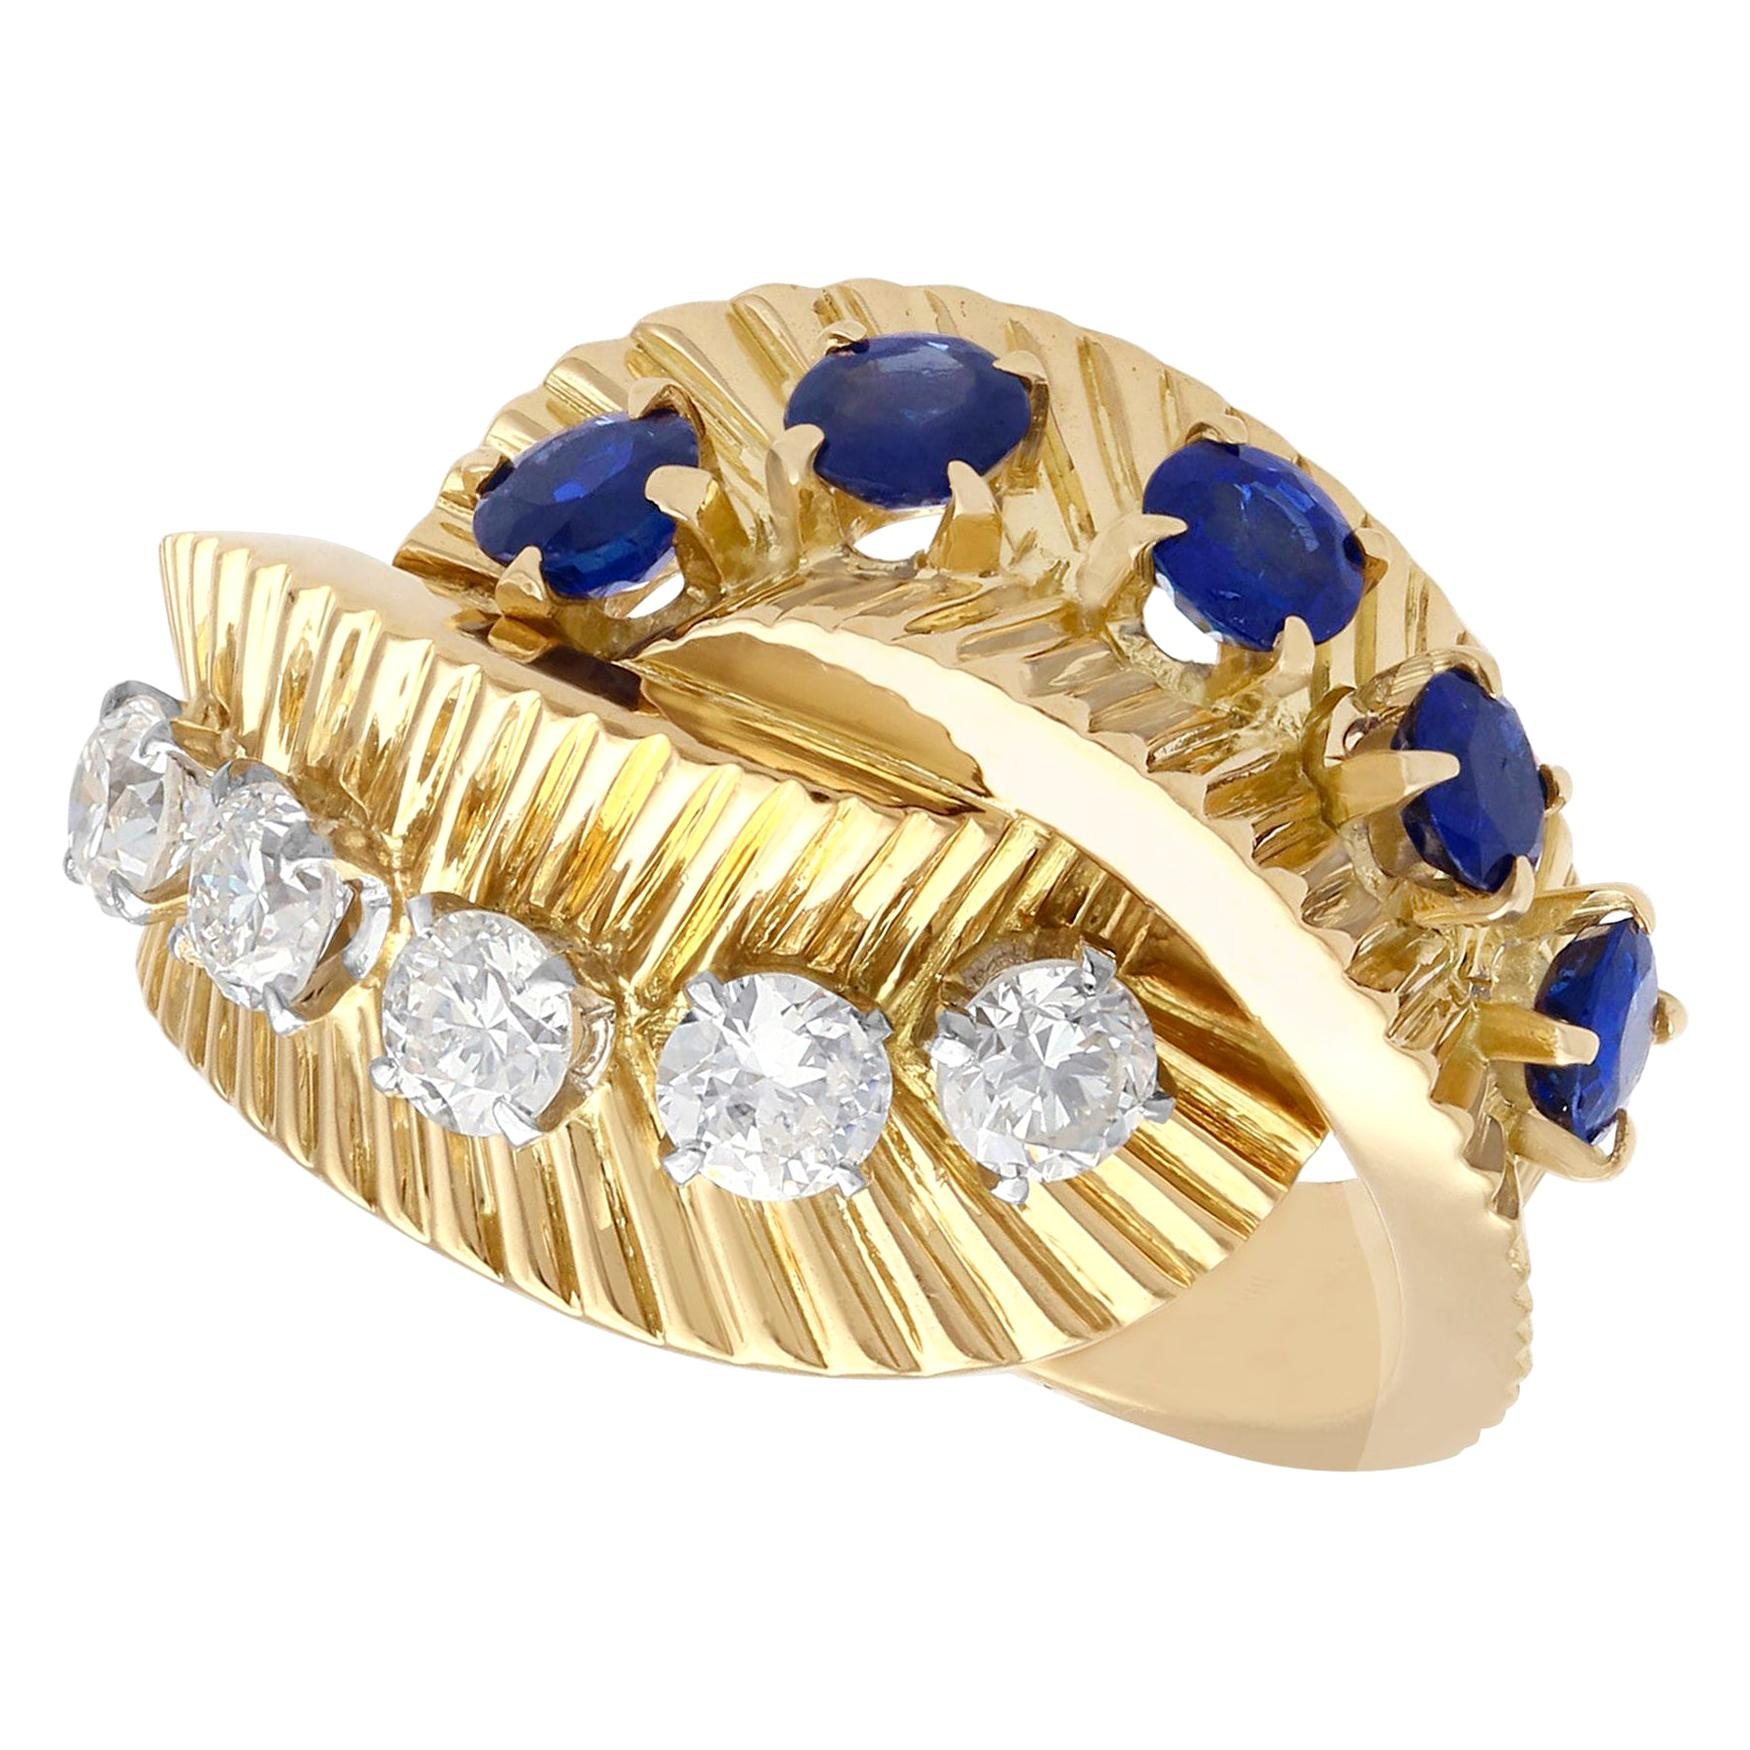 1960s Sapphire and Diamond Yellow Gold Ring by Van Cleef & Arpels